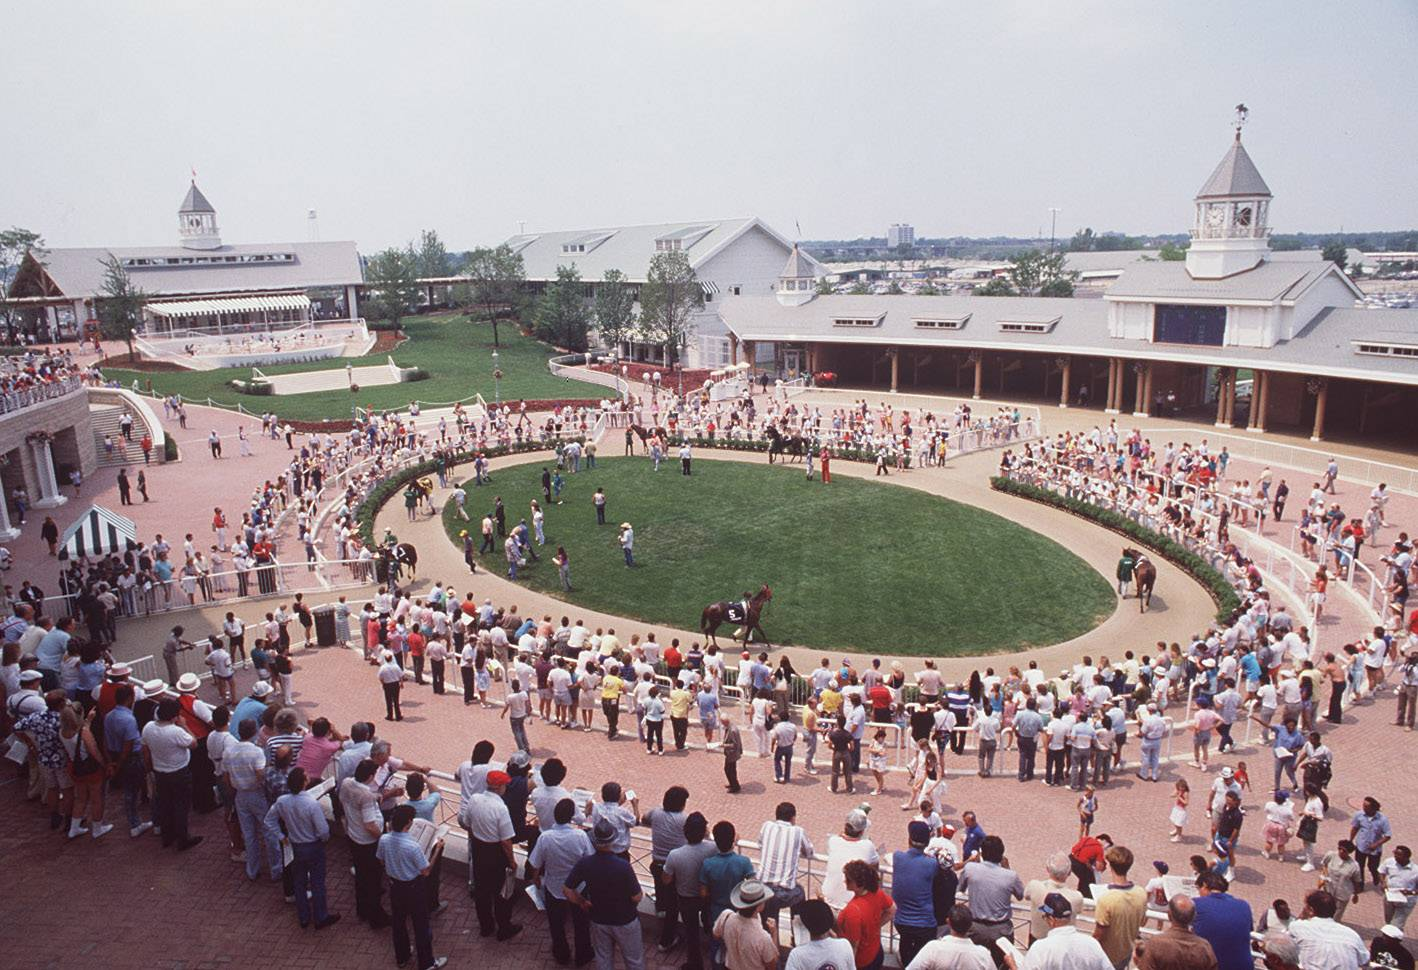 Fans check out the horses in the paddock area on the grand opening of the new Arlington International Racecourse  in July, 1989.